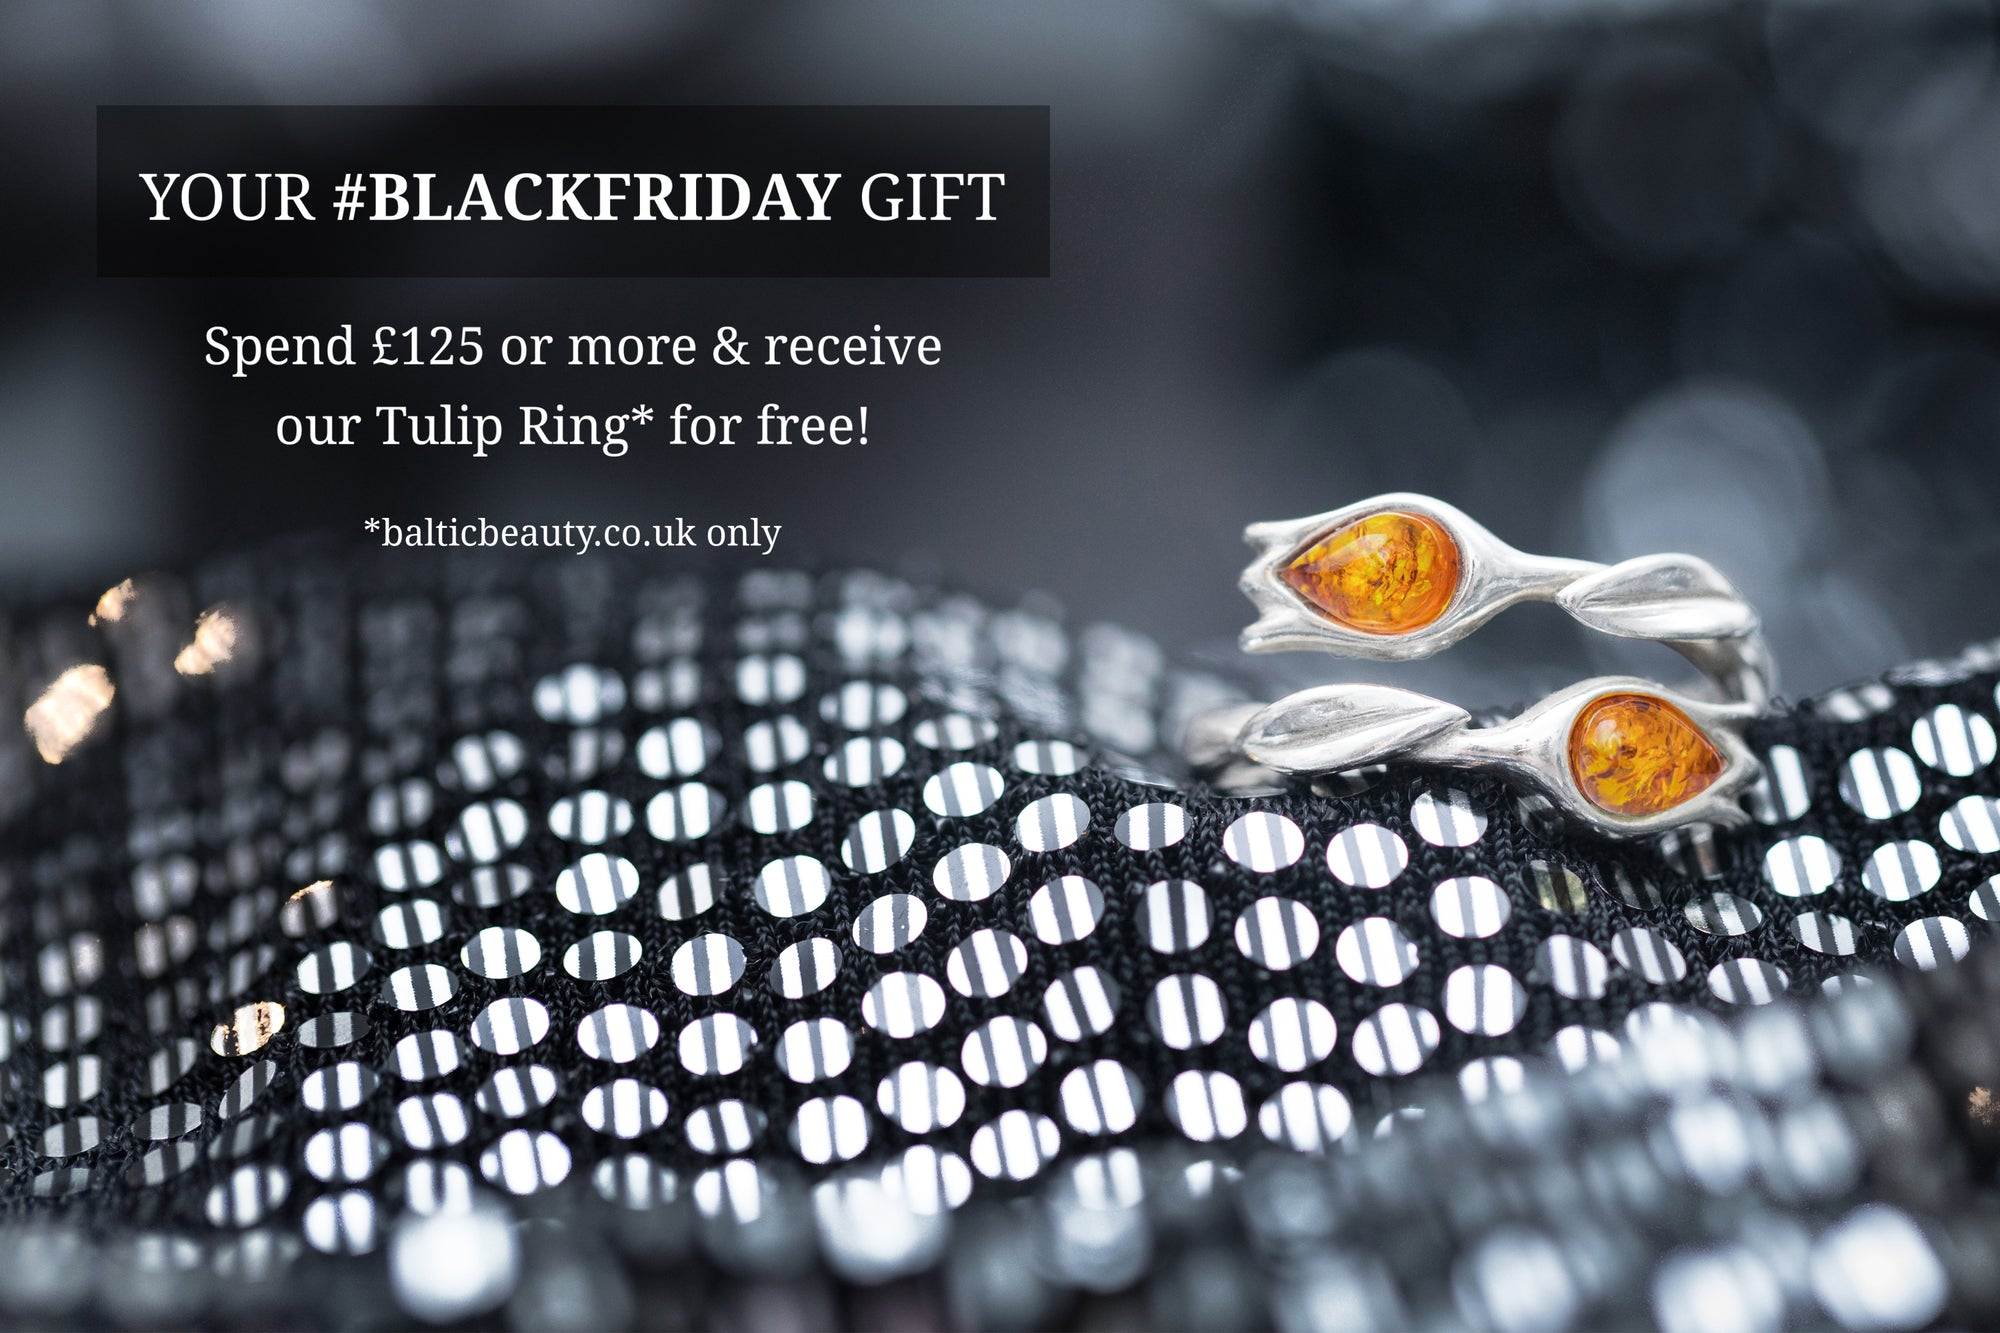 FREE Amber Tulip Ring with every order over £125! #BLACKFRIDAY